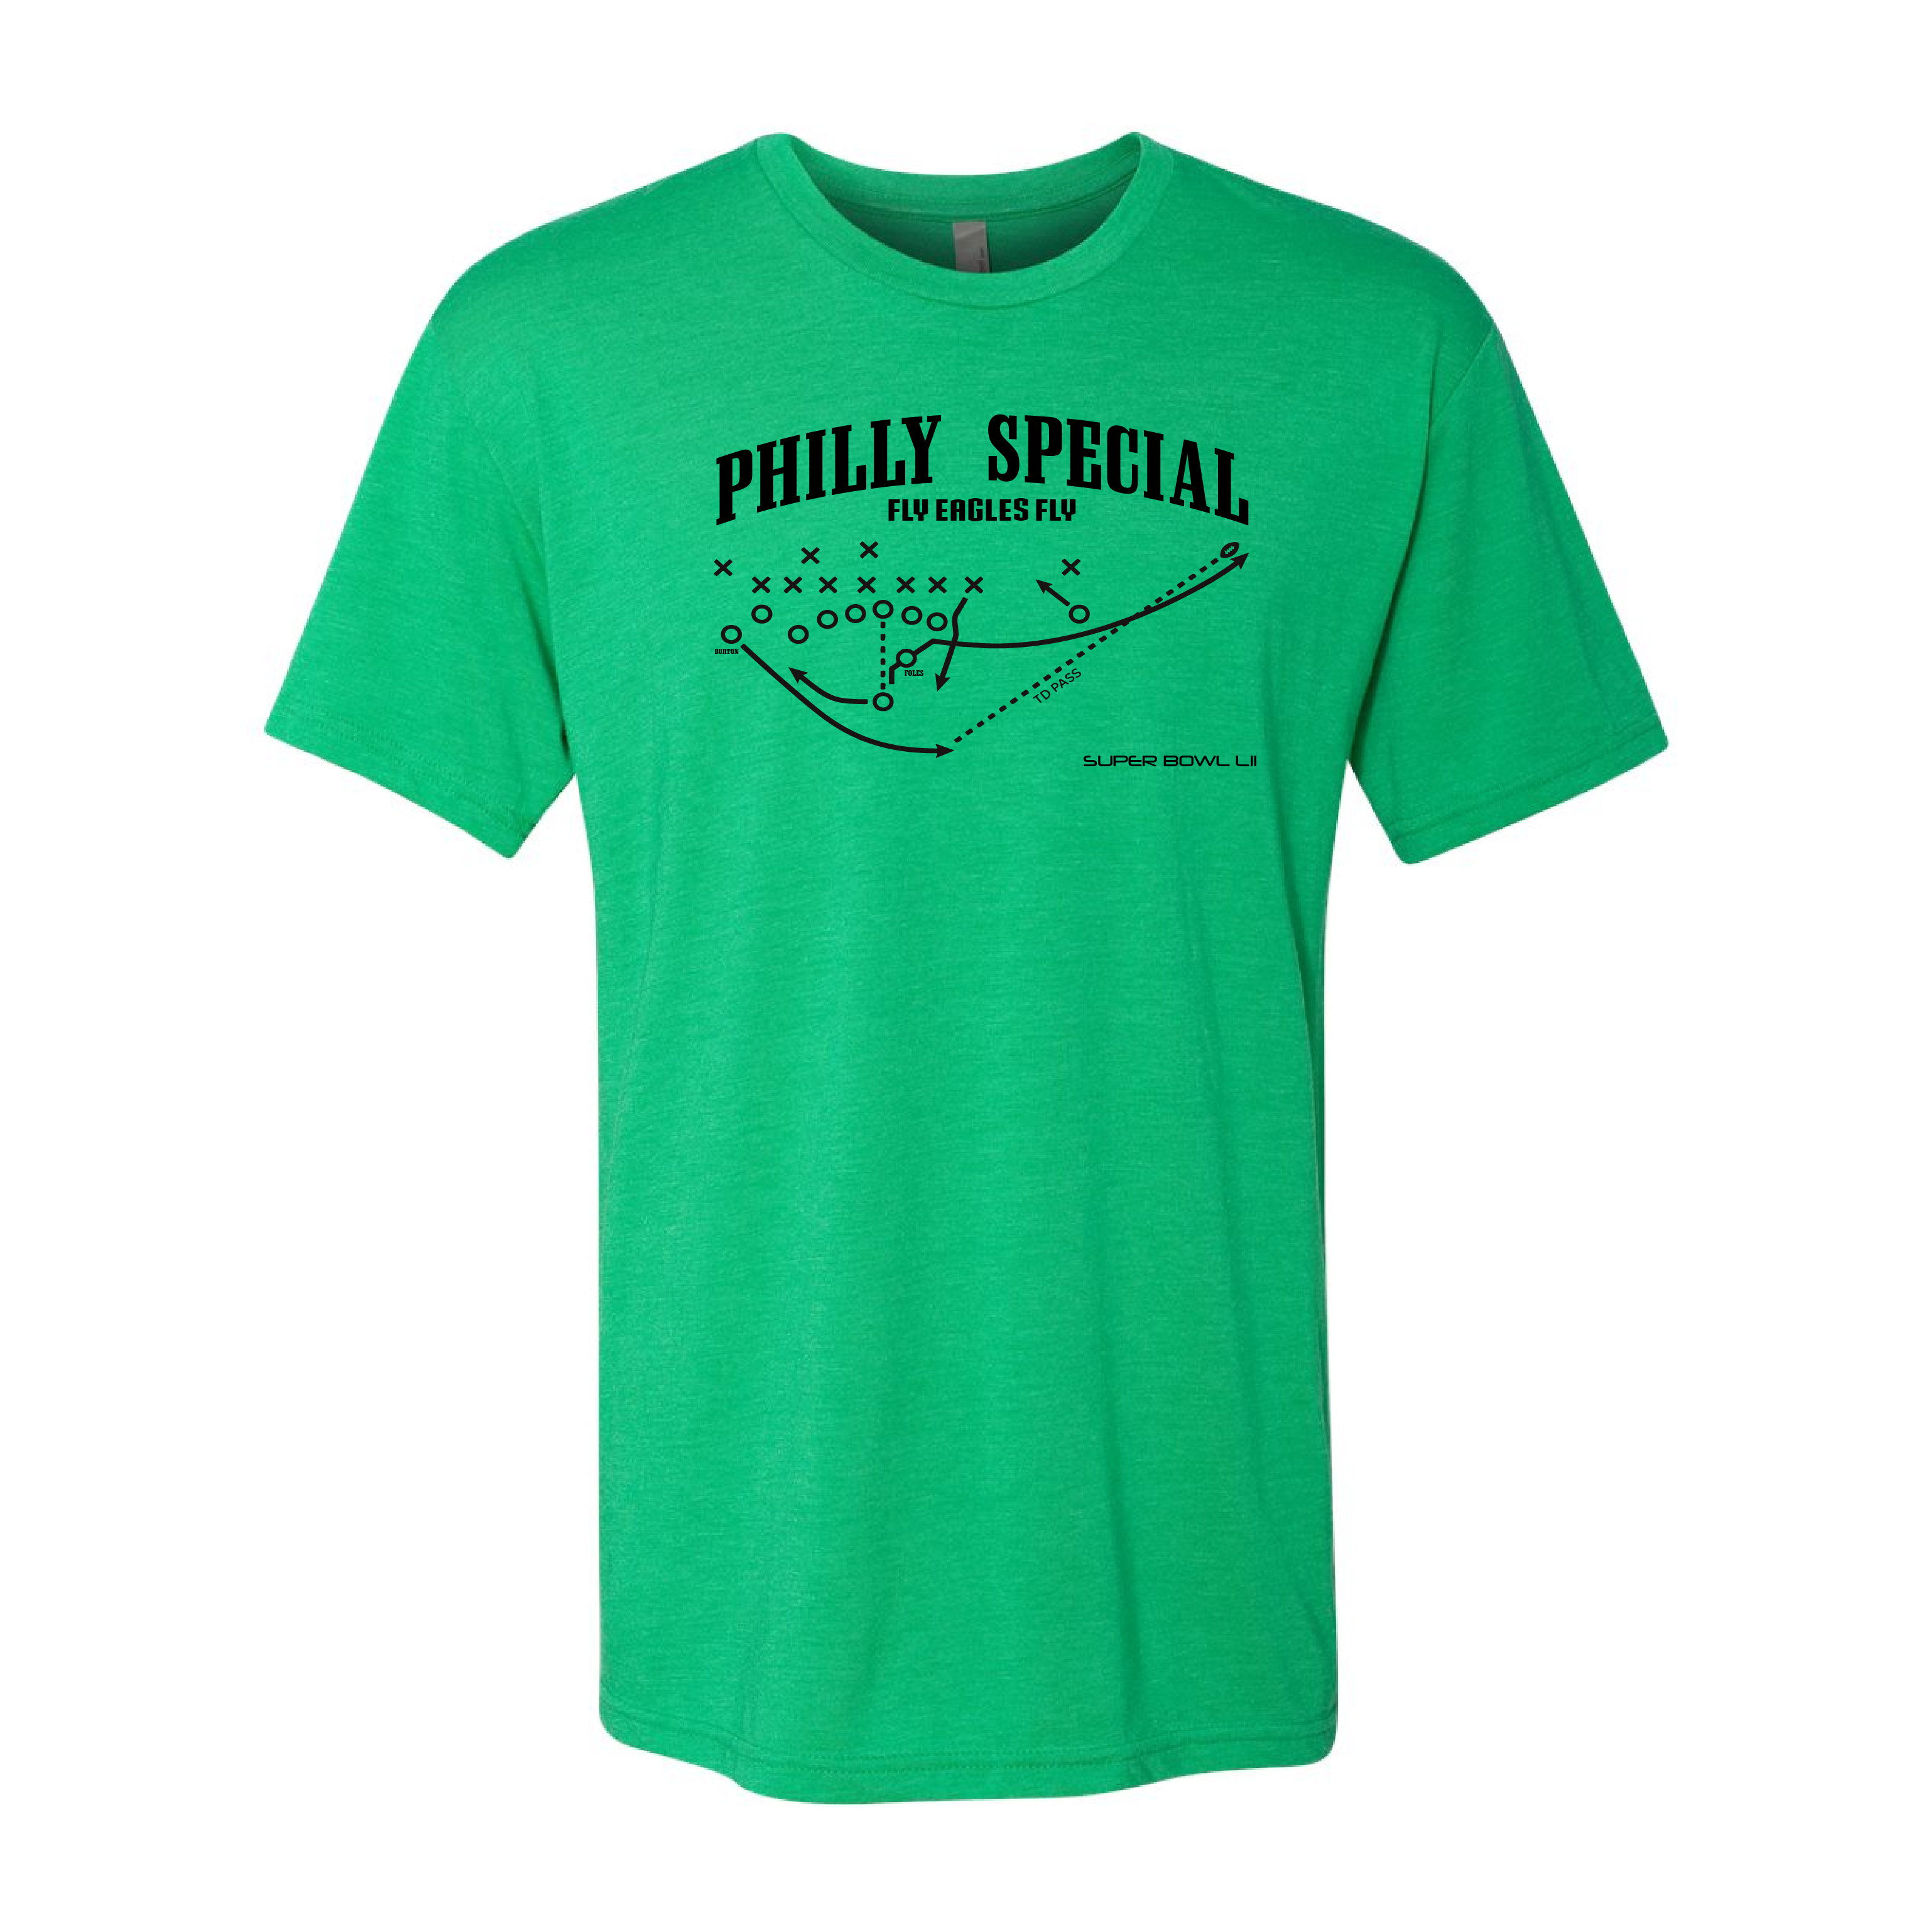 new styles ad99c 1d1ef Philadelphia Eagles Philly Special Super Bowl T-Shirt- Nick Foles Touchdown  Play